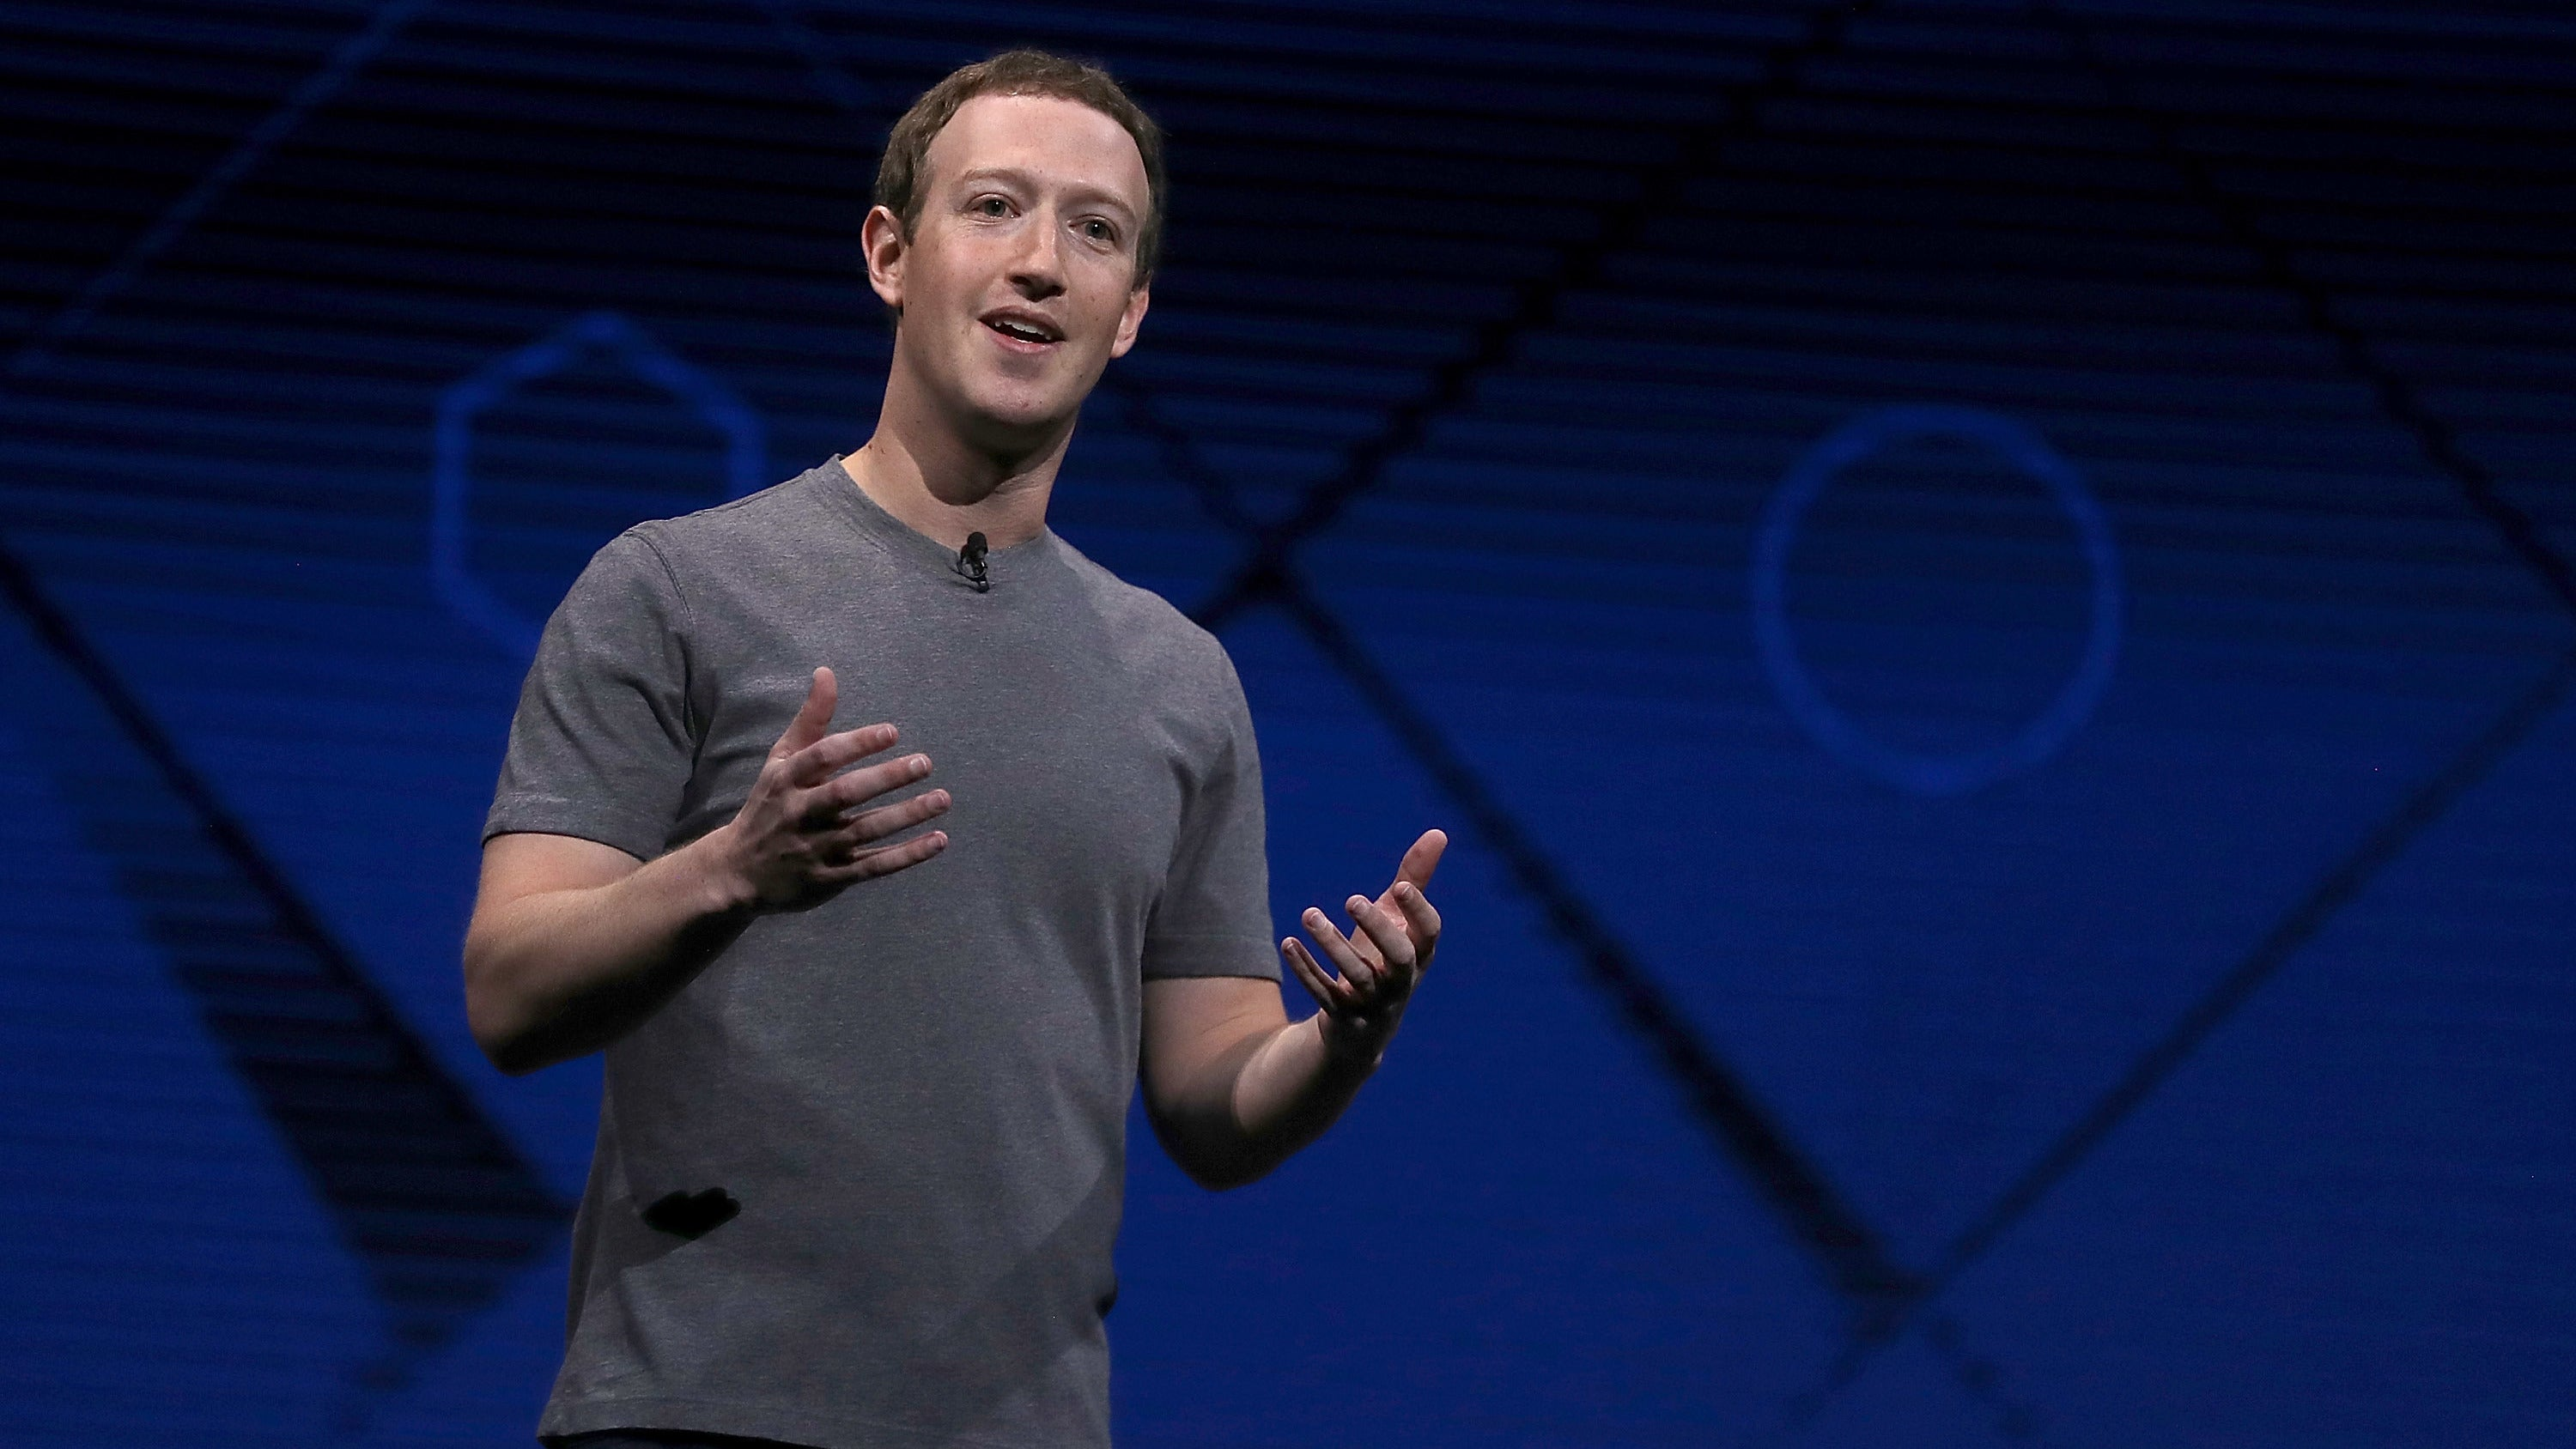 As If The Internet Isn't Already Horrible Enough, Facebook Wants To Become YouTube